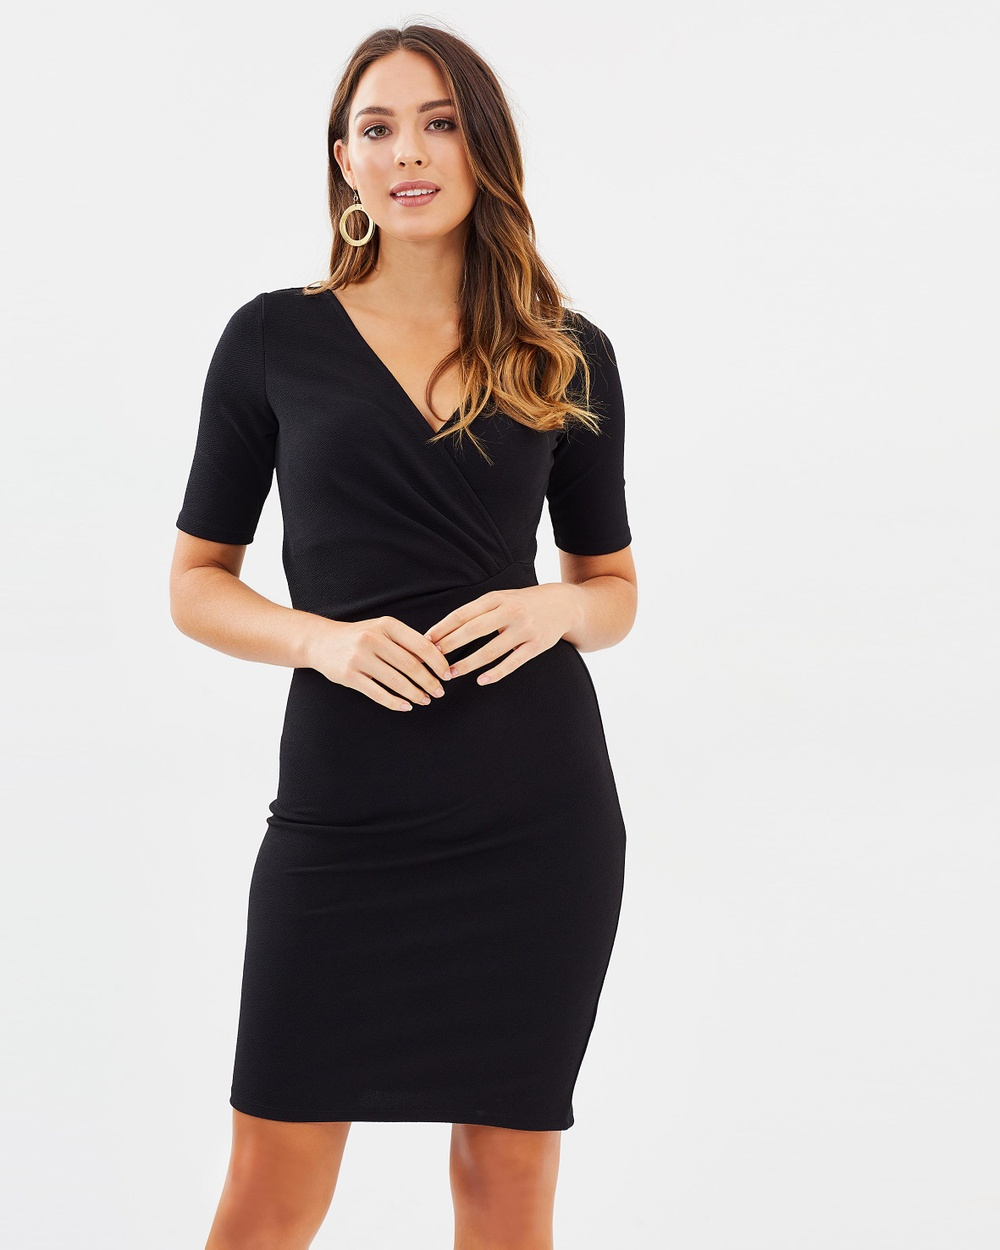 Dorothy Perkins Ruched Side Pencil Dress Dresses Black Ruched Side Pencil Dress